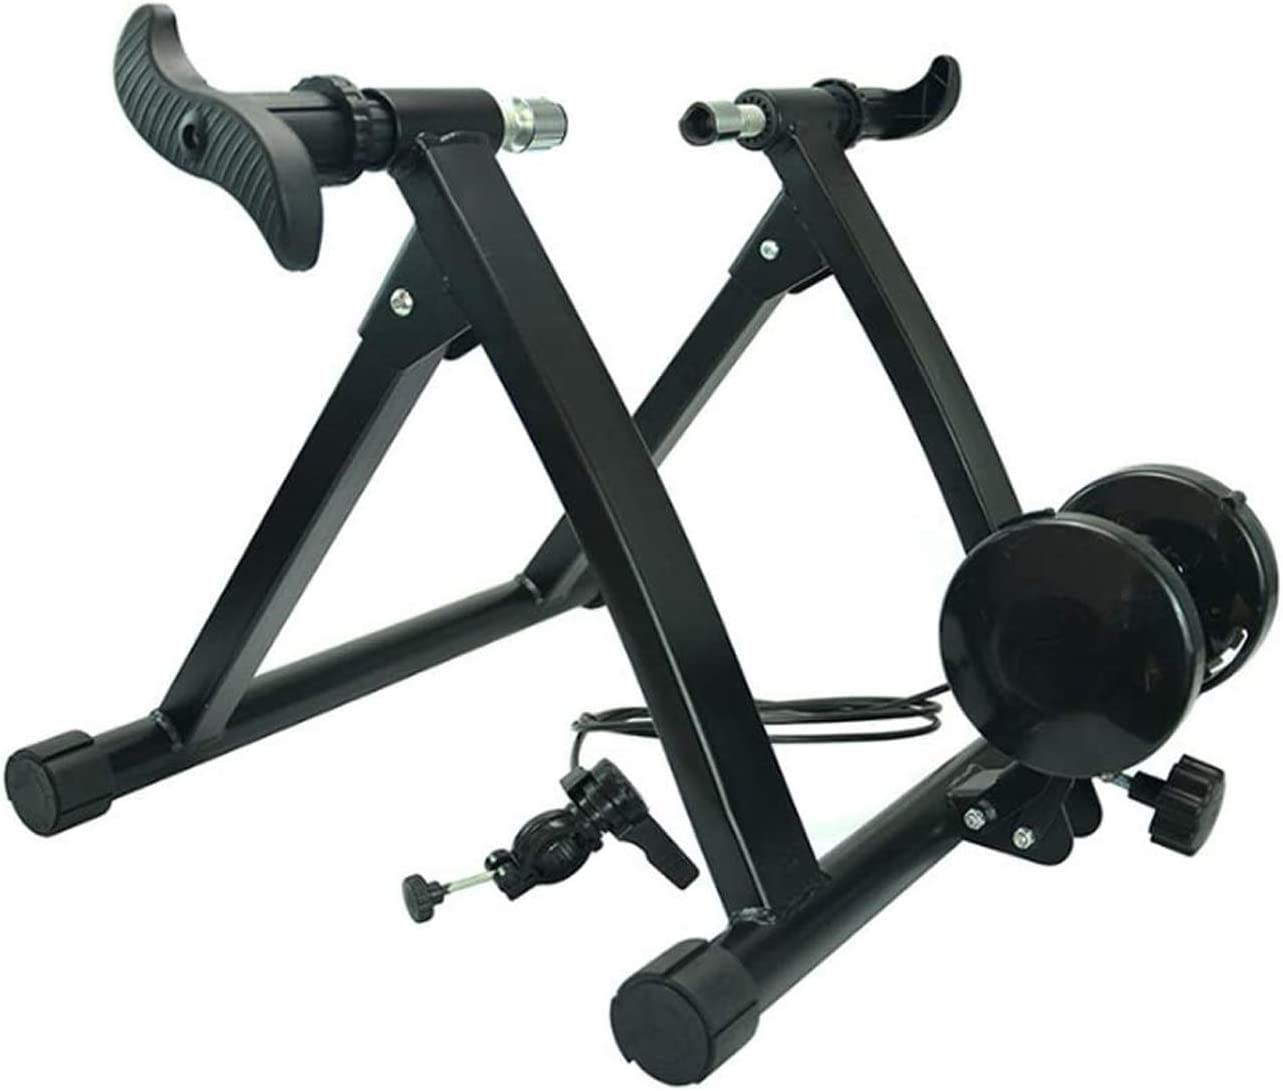 DSWHM Sales results No. 1 Bike Trainer outlet Stand Indoor Turb Foldable